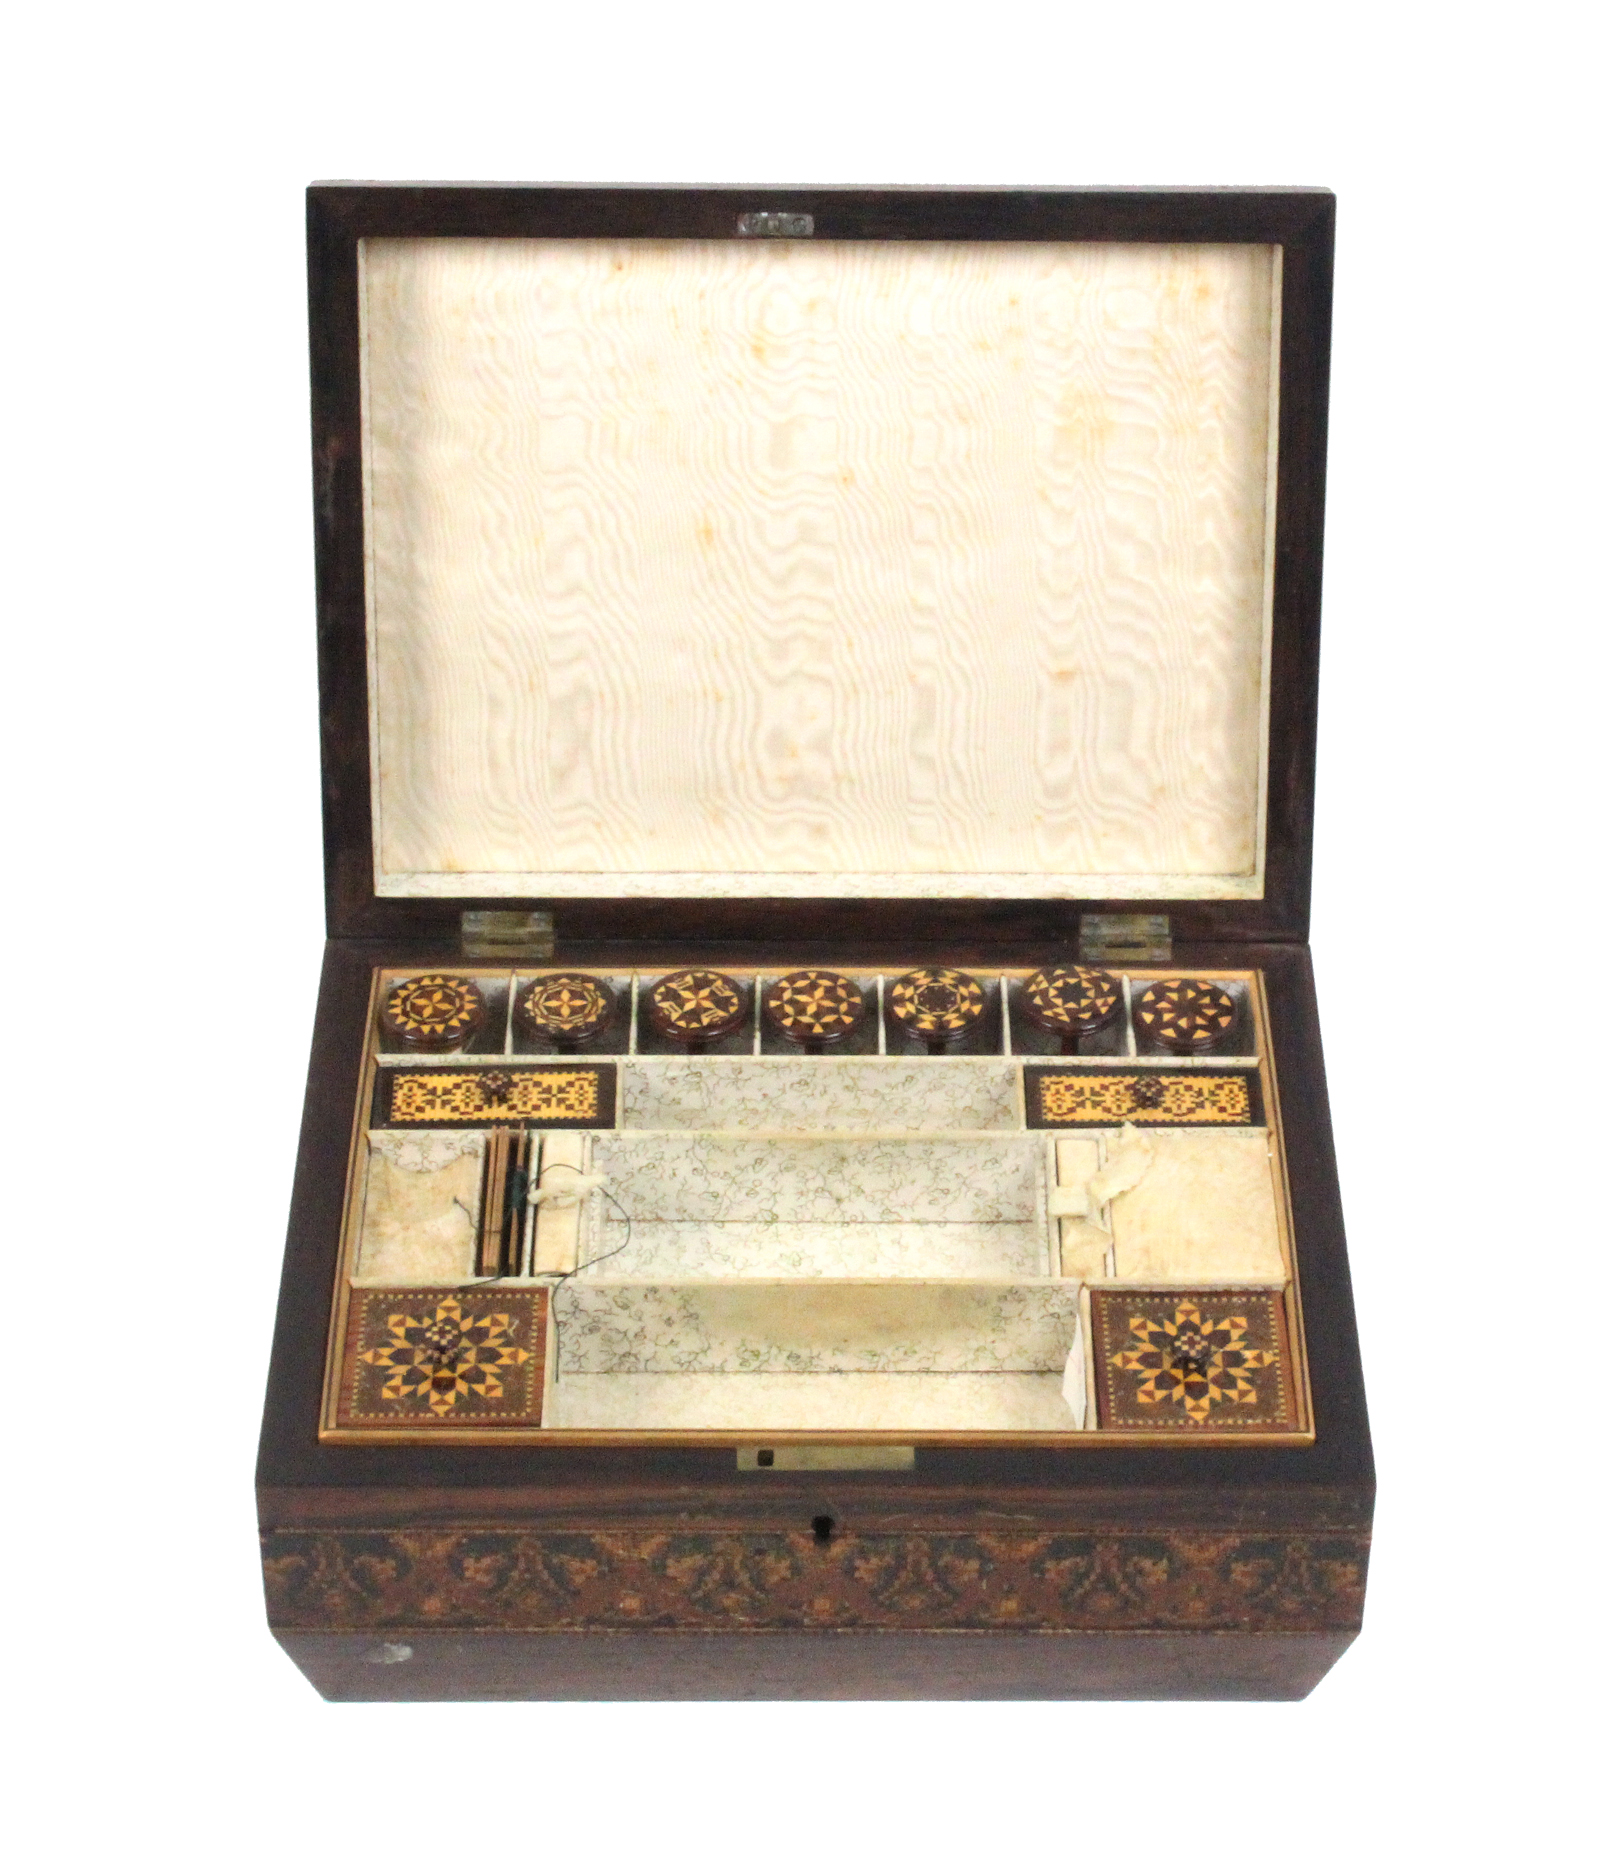 A Tunbridge ware rosewood sewing box of sarcophagal form, the lid with a view of Eridge Castle - Image 2 of 2